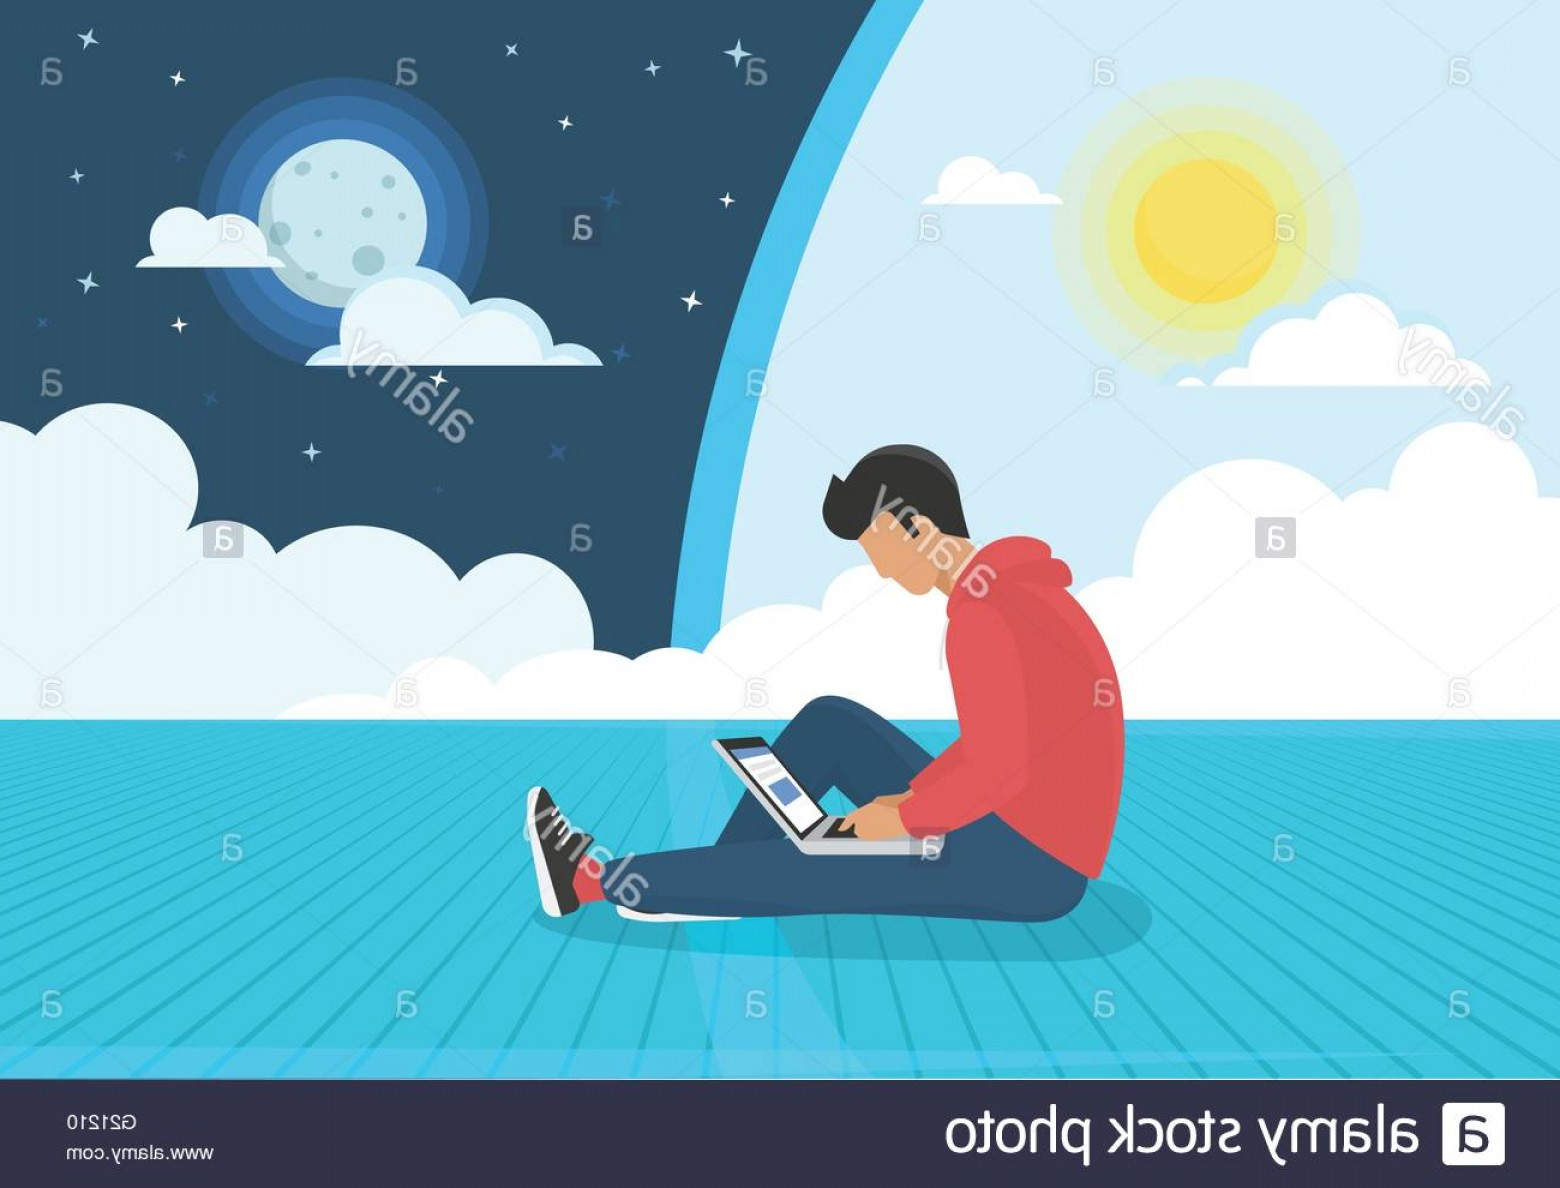 Vector Man Sitting On Floor: Stock Photo Young Man Sitting On The Floor Working With Laptop Day And Night